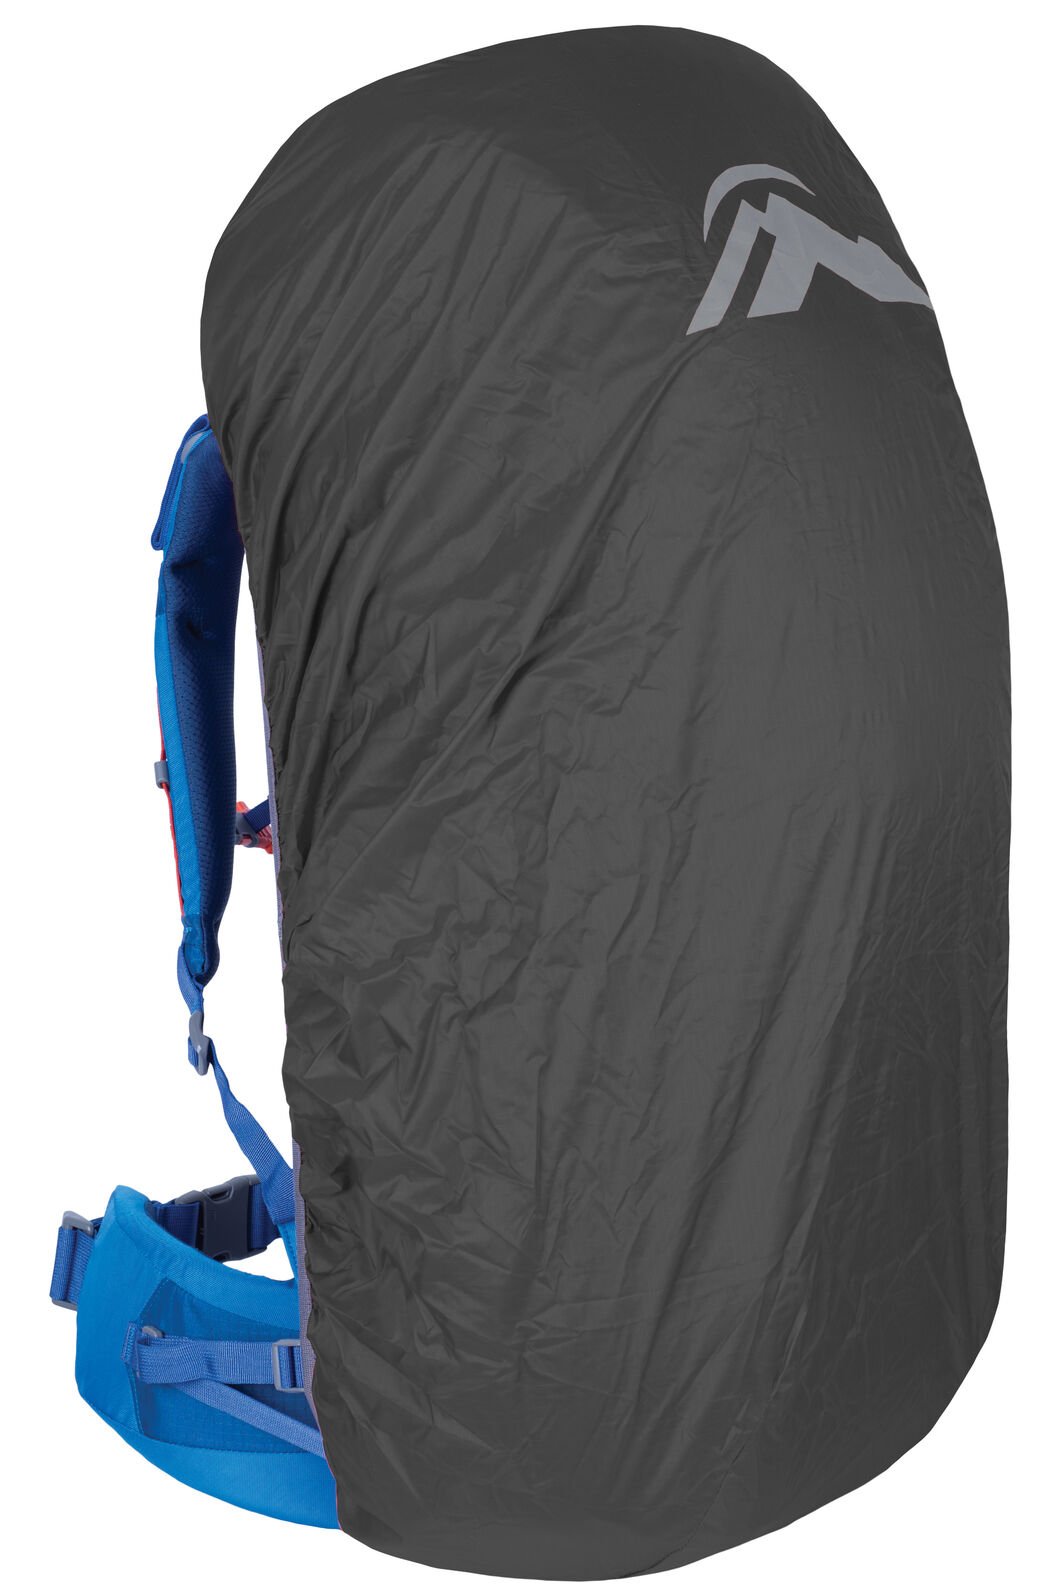 Macpac Pack Raincover Large, Charcoal, hi-res